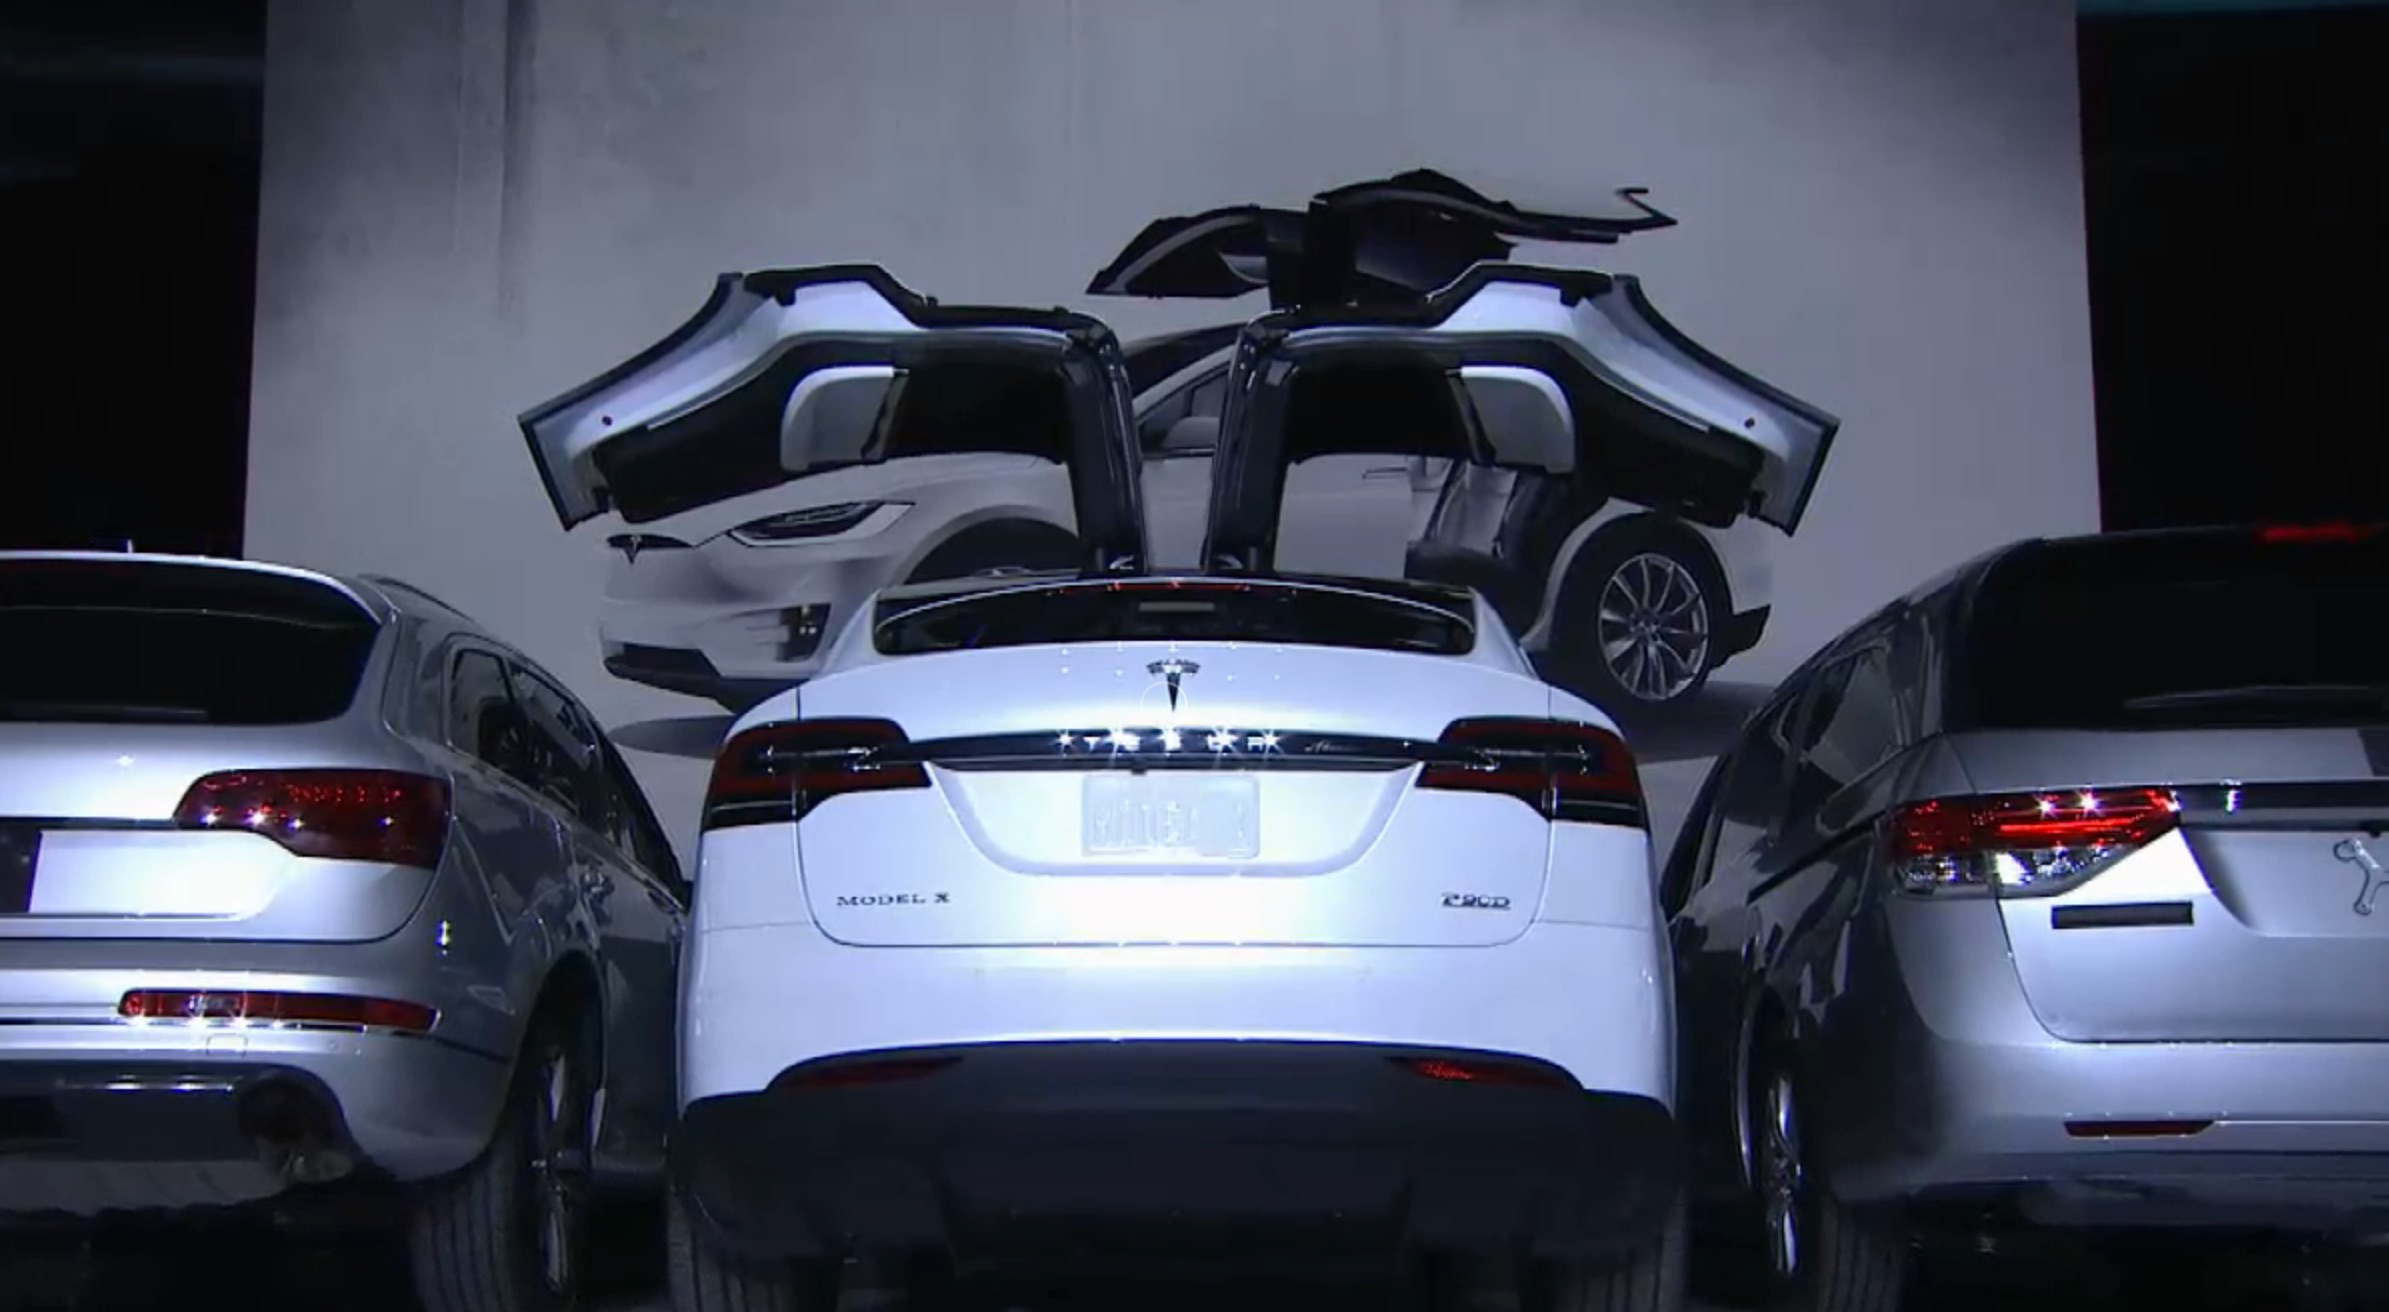 Model X Falcon Wing Doors Open Between Parked Cars